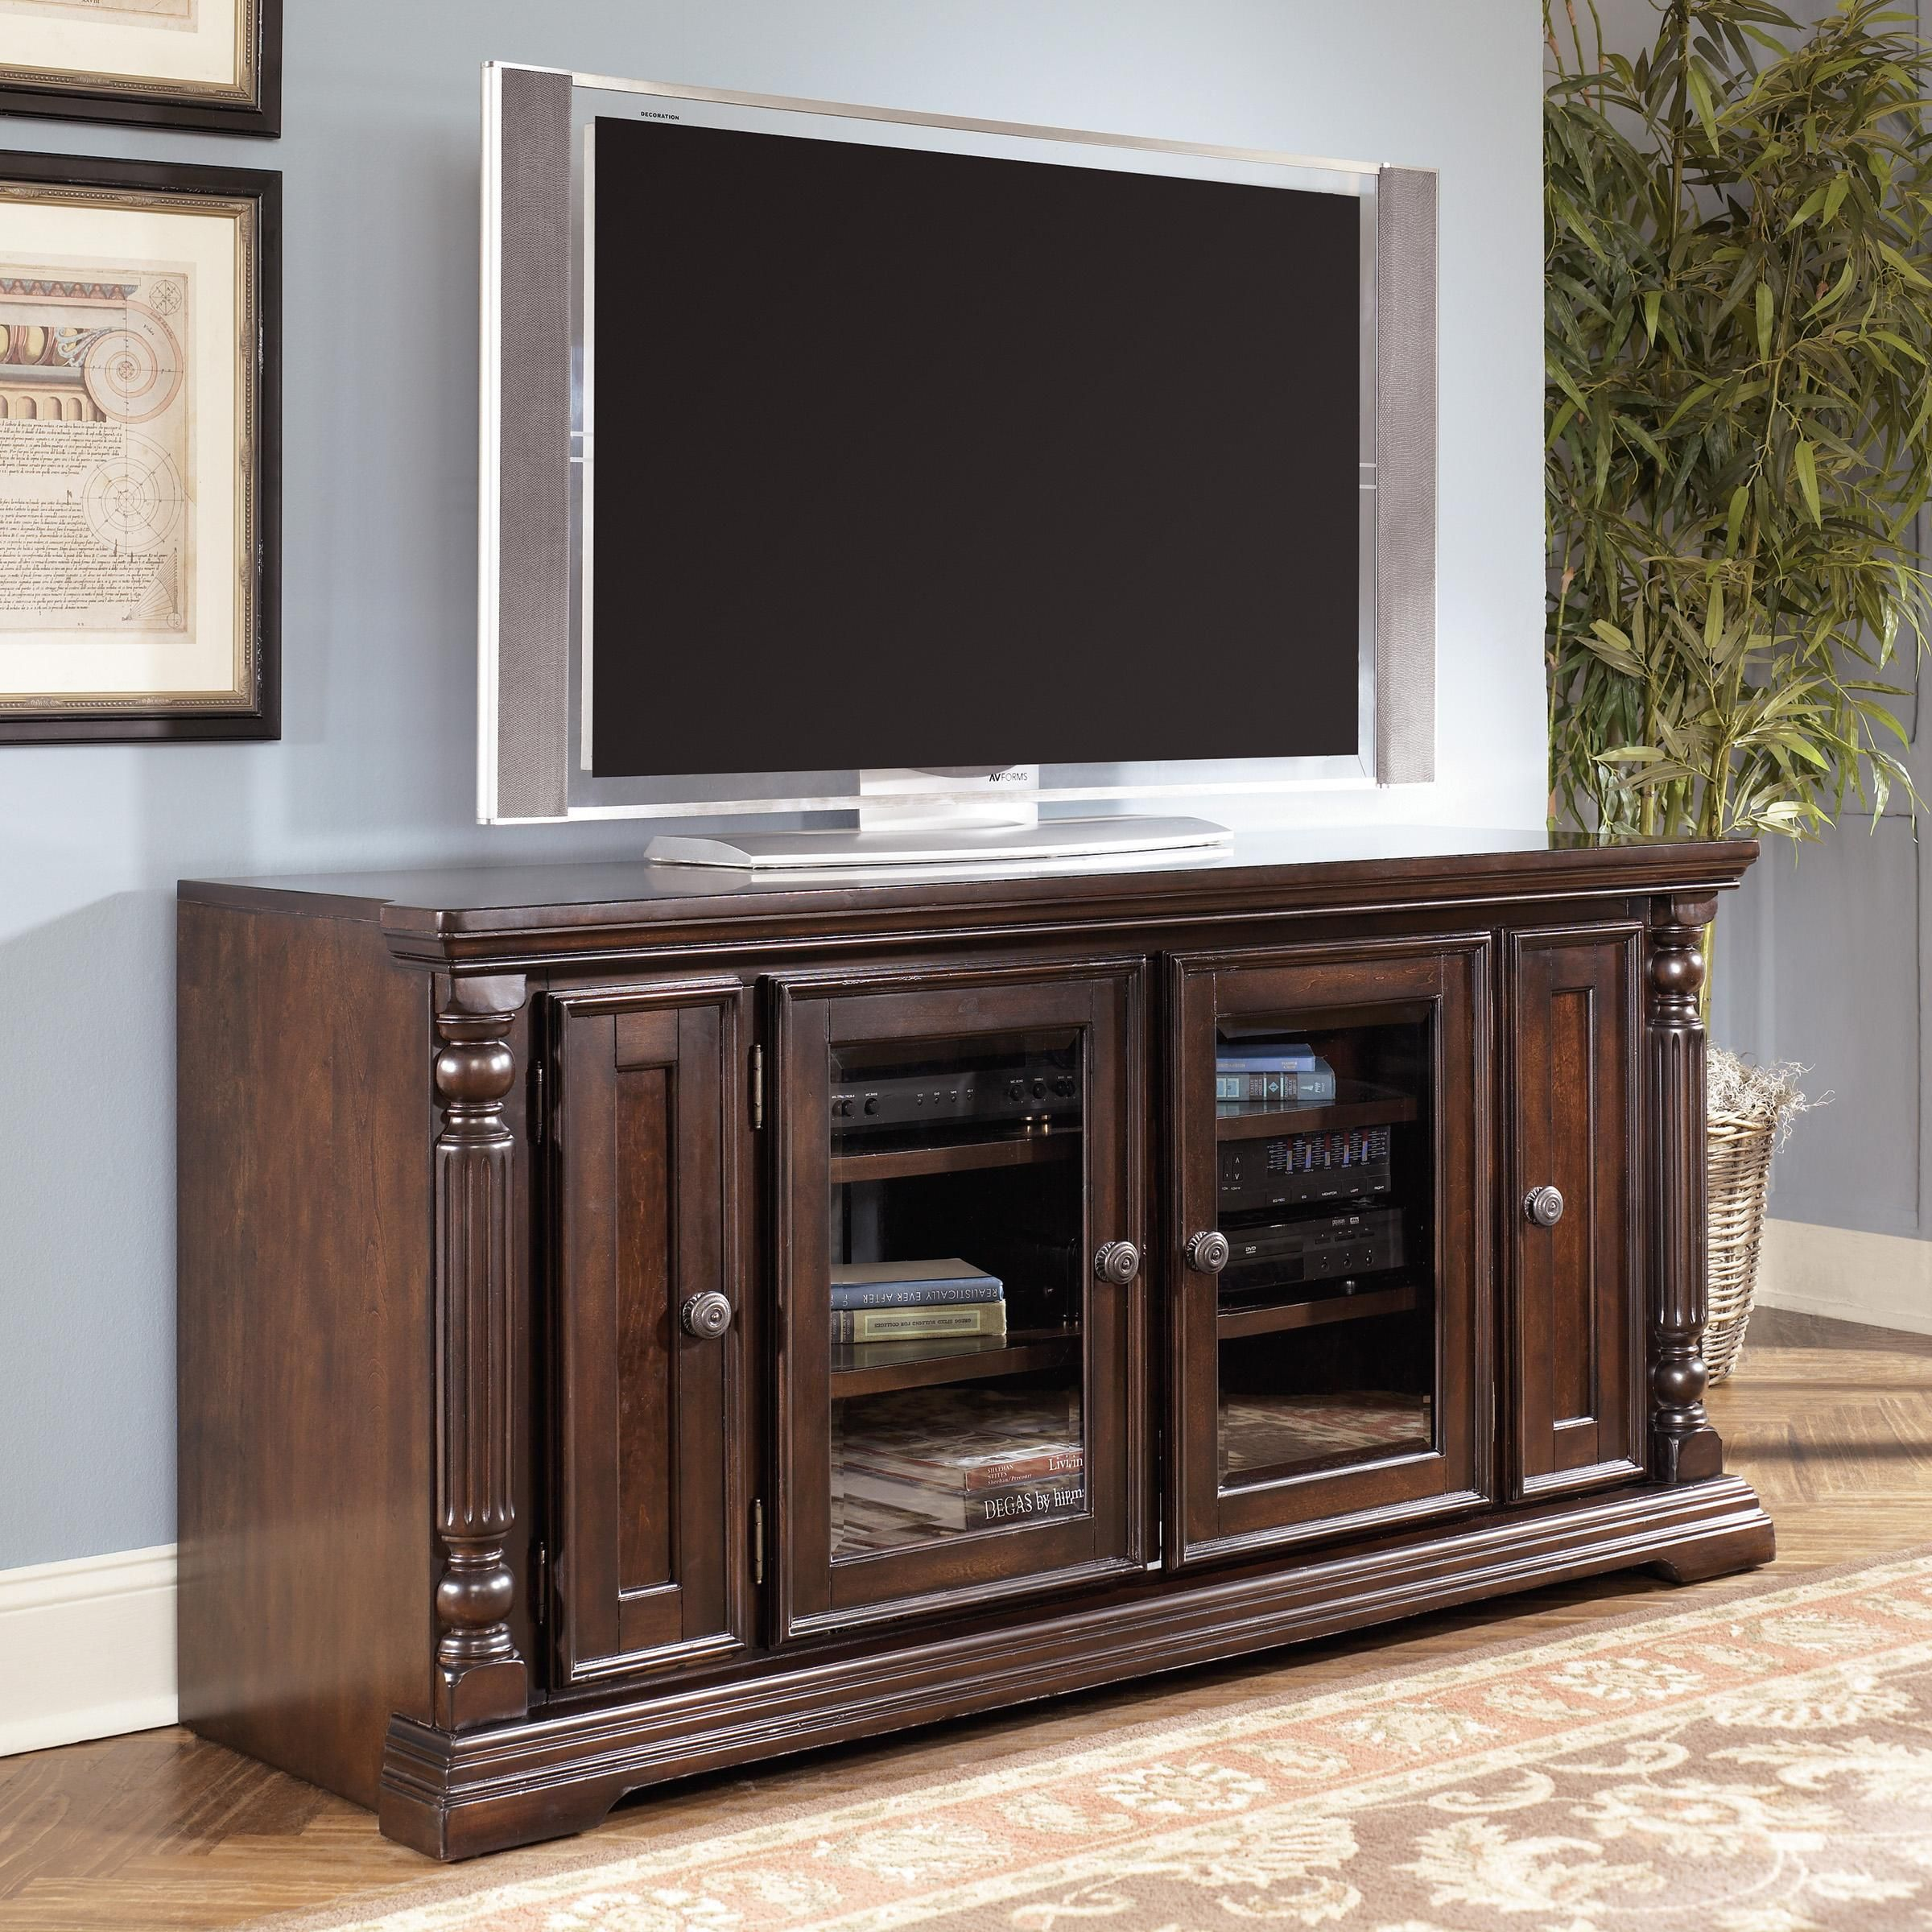 Tall TV stand | New Home Decor | Pinterest | Tall tv stands and Tv ...